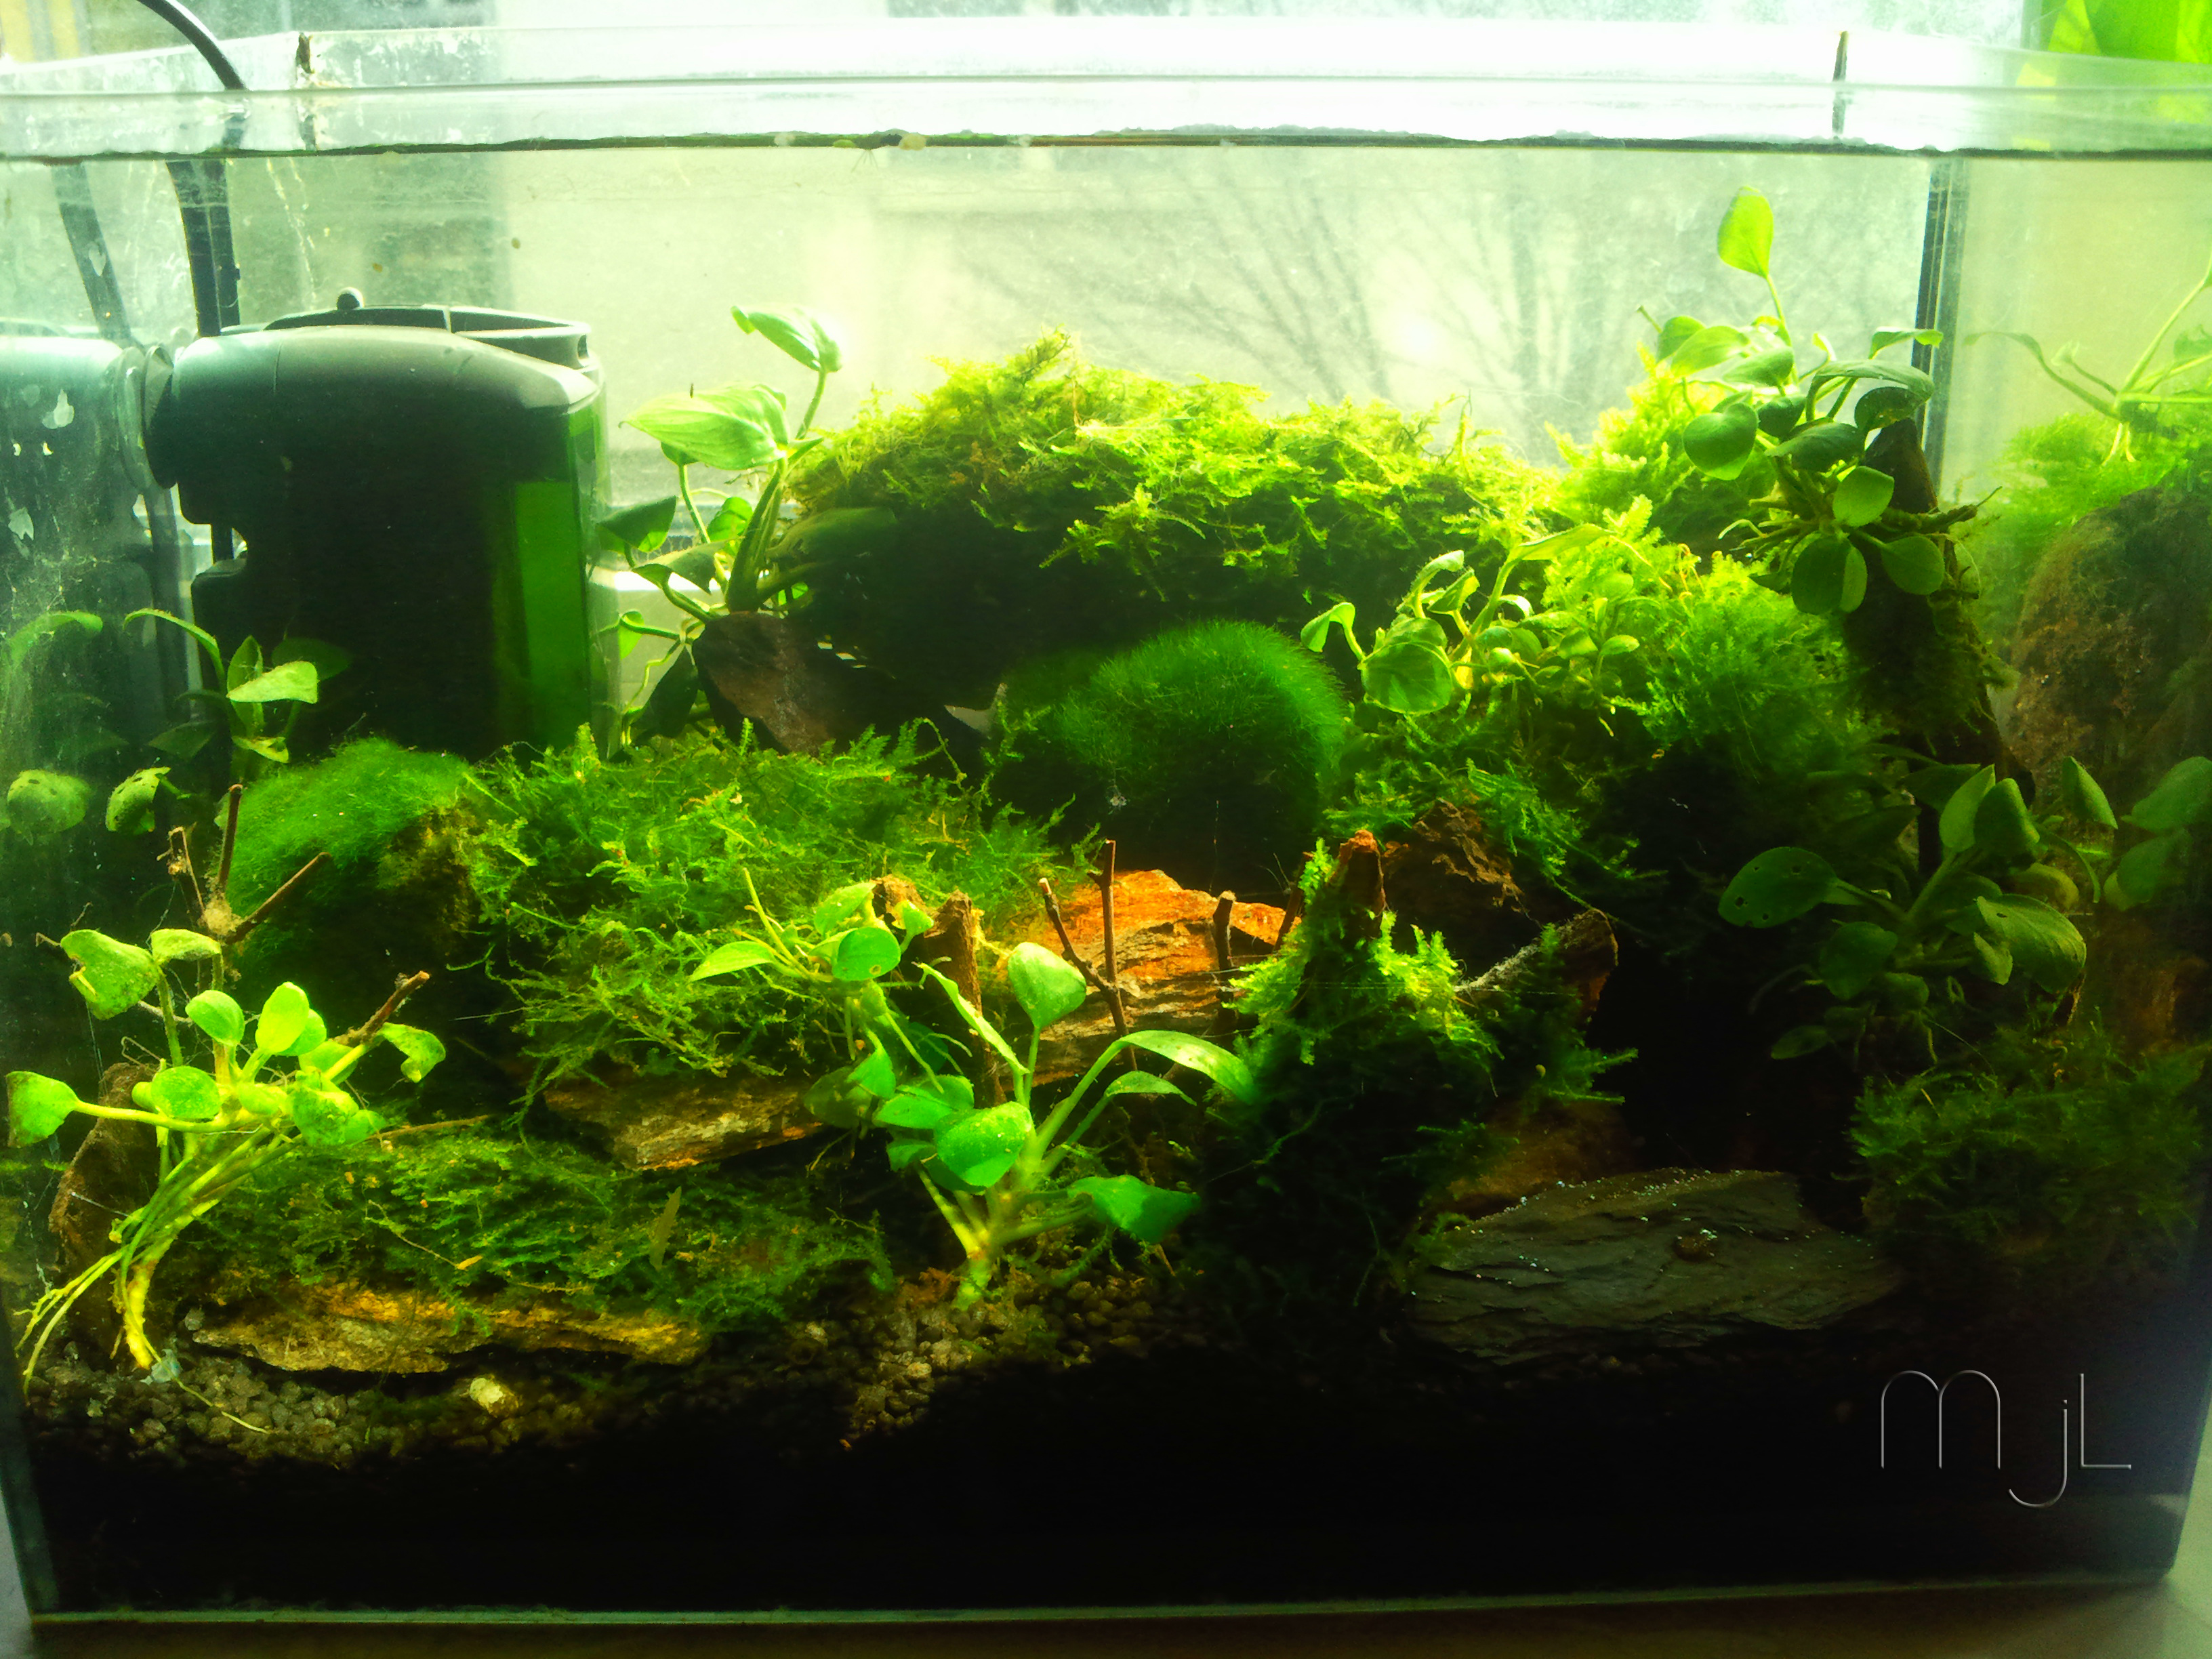 Datei 12 Liter Aquarium Jpg Wikipedia